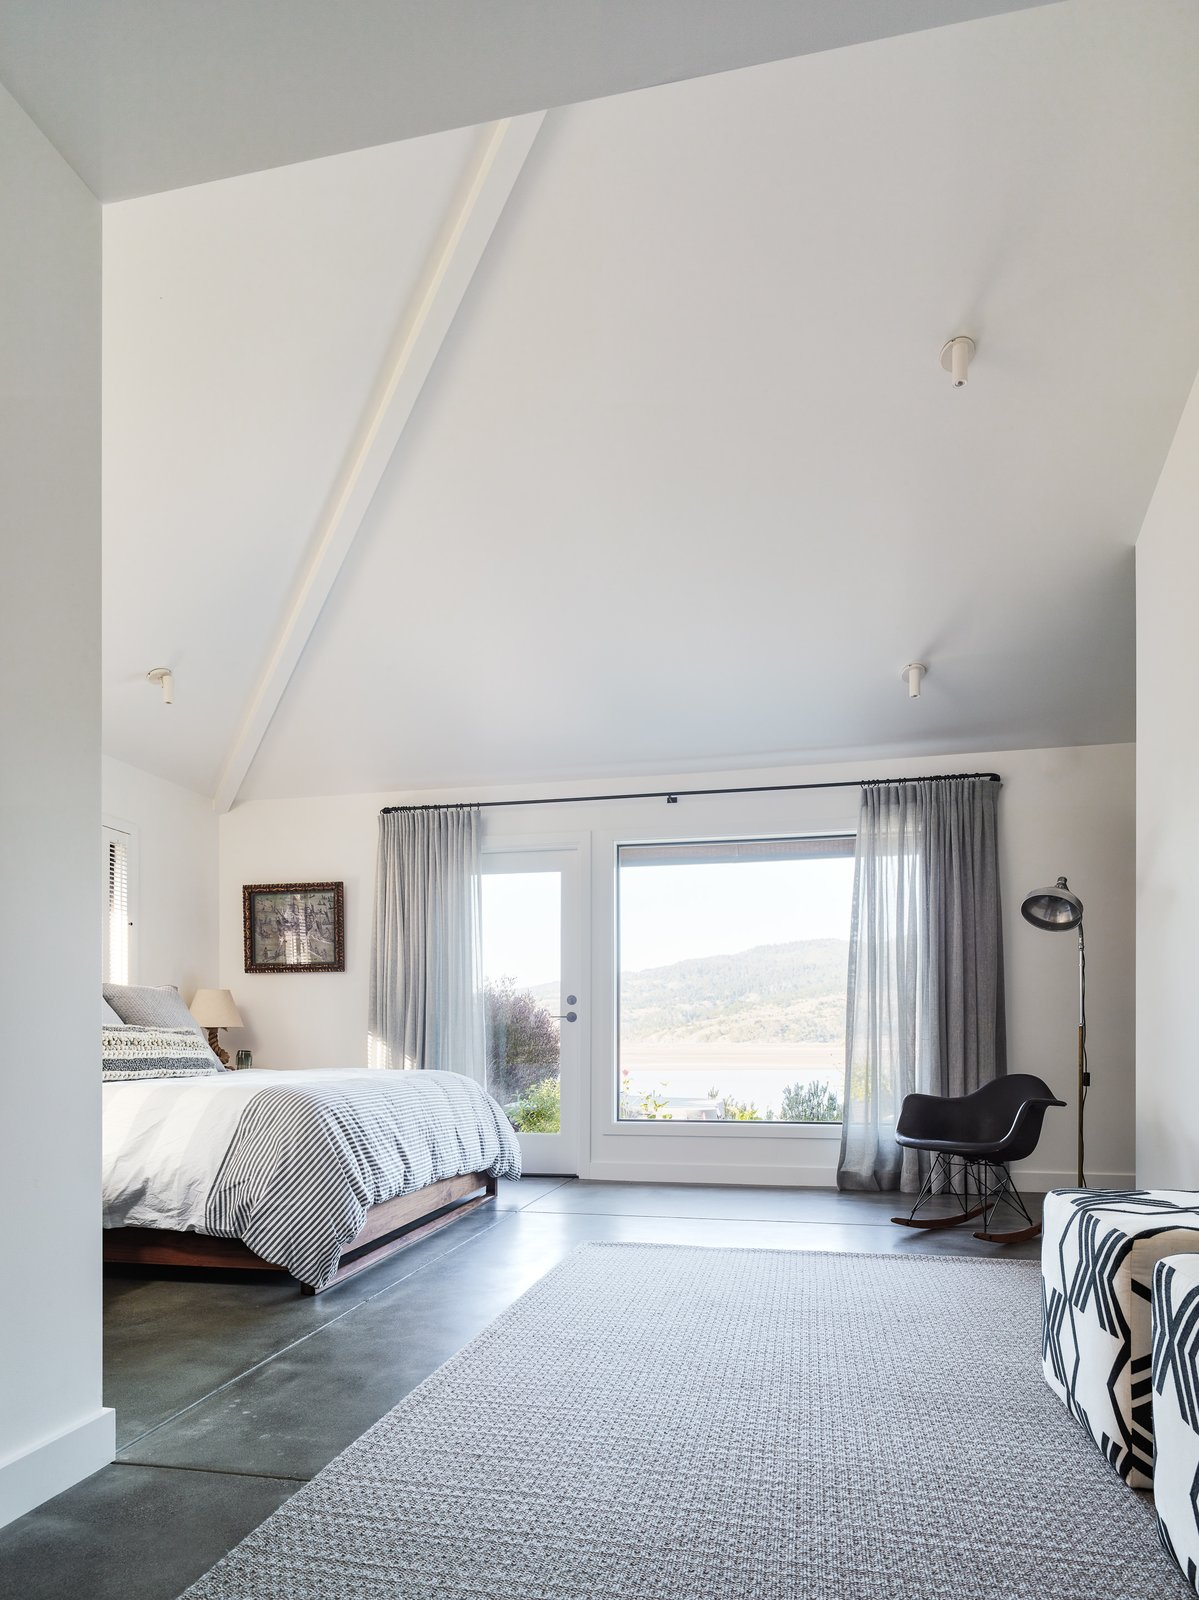 Bedroom, Bed, Floor, Chair, Rug, Table, Ceiling, Concrete, Lamps, and Rockers The bright and airy master bedroom features high ceilings and a spectacular view.  Best Bedroom Ceiling Chair Rockers Photos from A Delicate Renovation Revives a '70s Beach House in Northern California